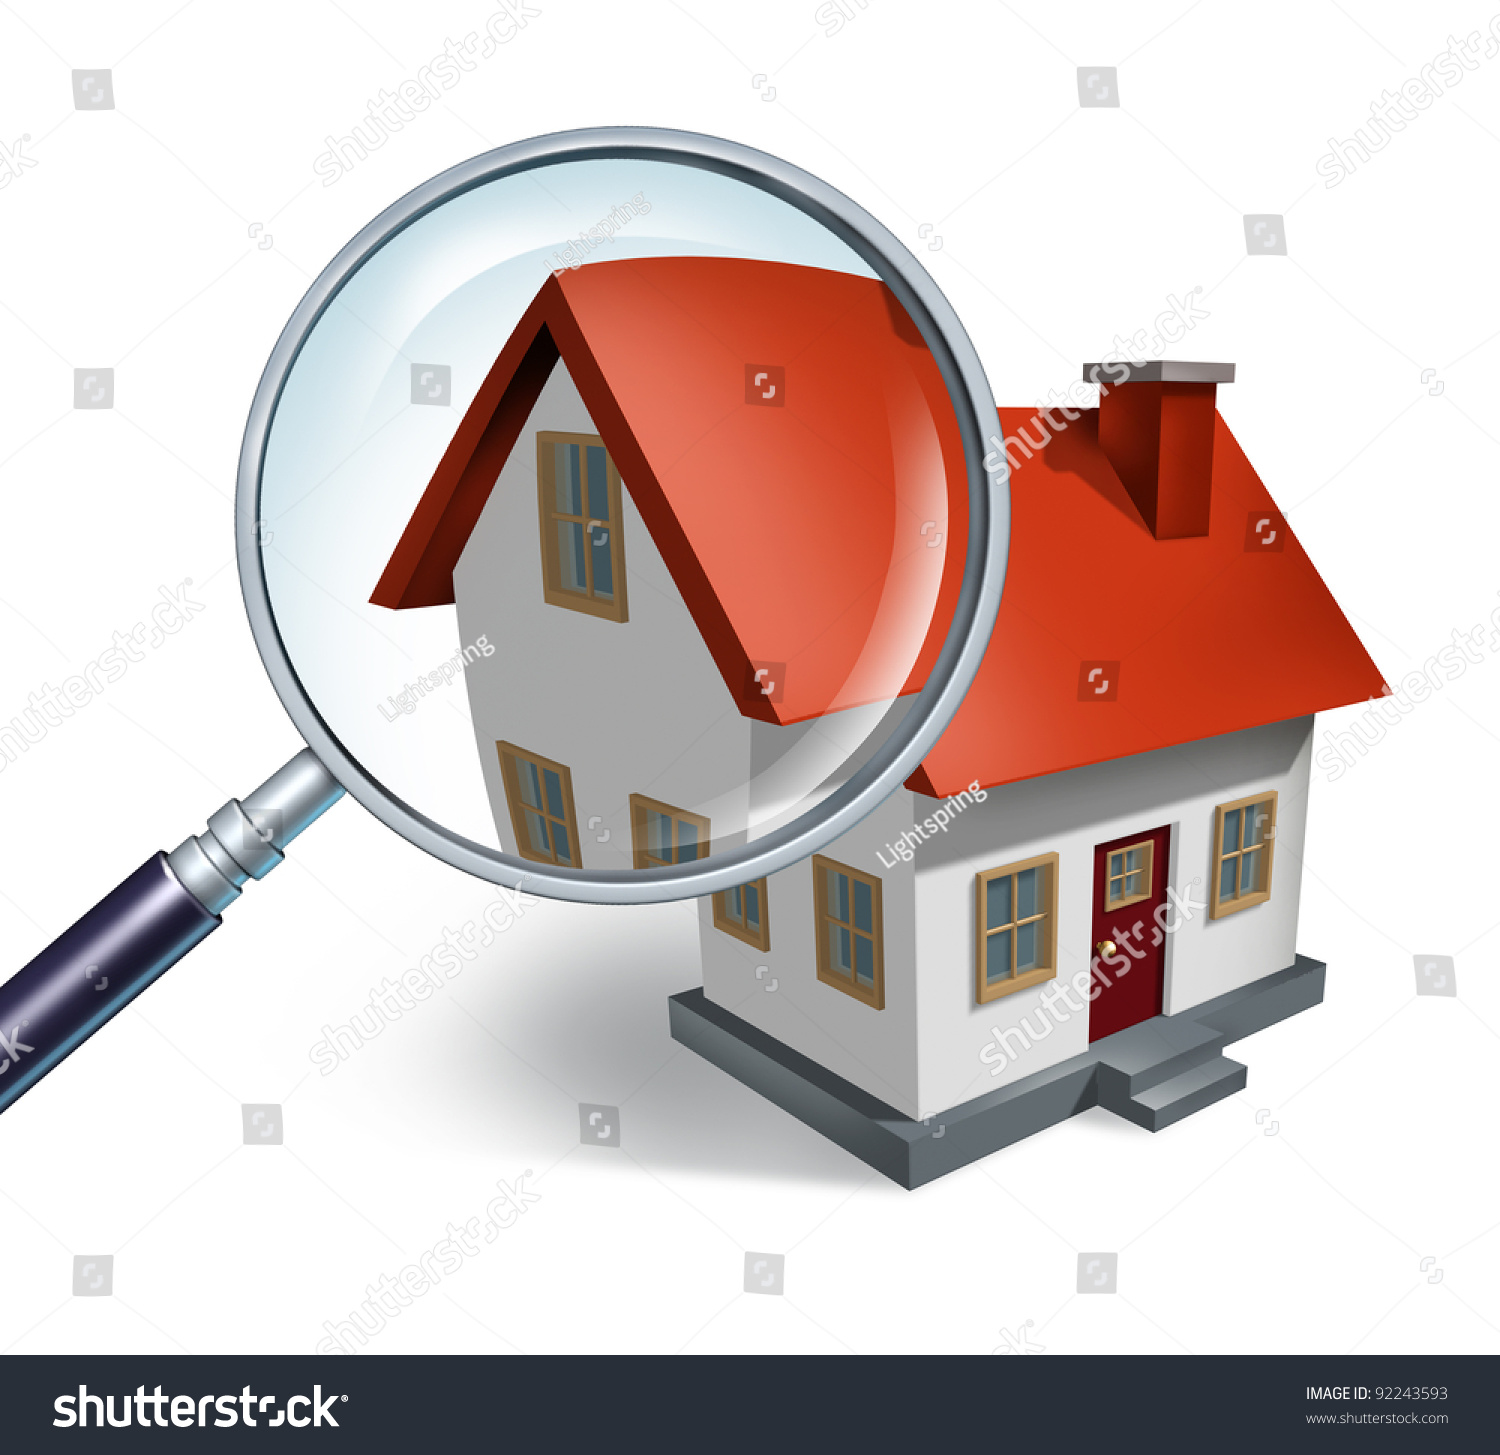 Z Homes For Sale Stock Photo House Hunting And Searching For Real